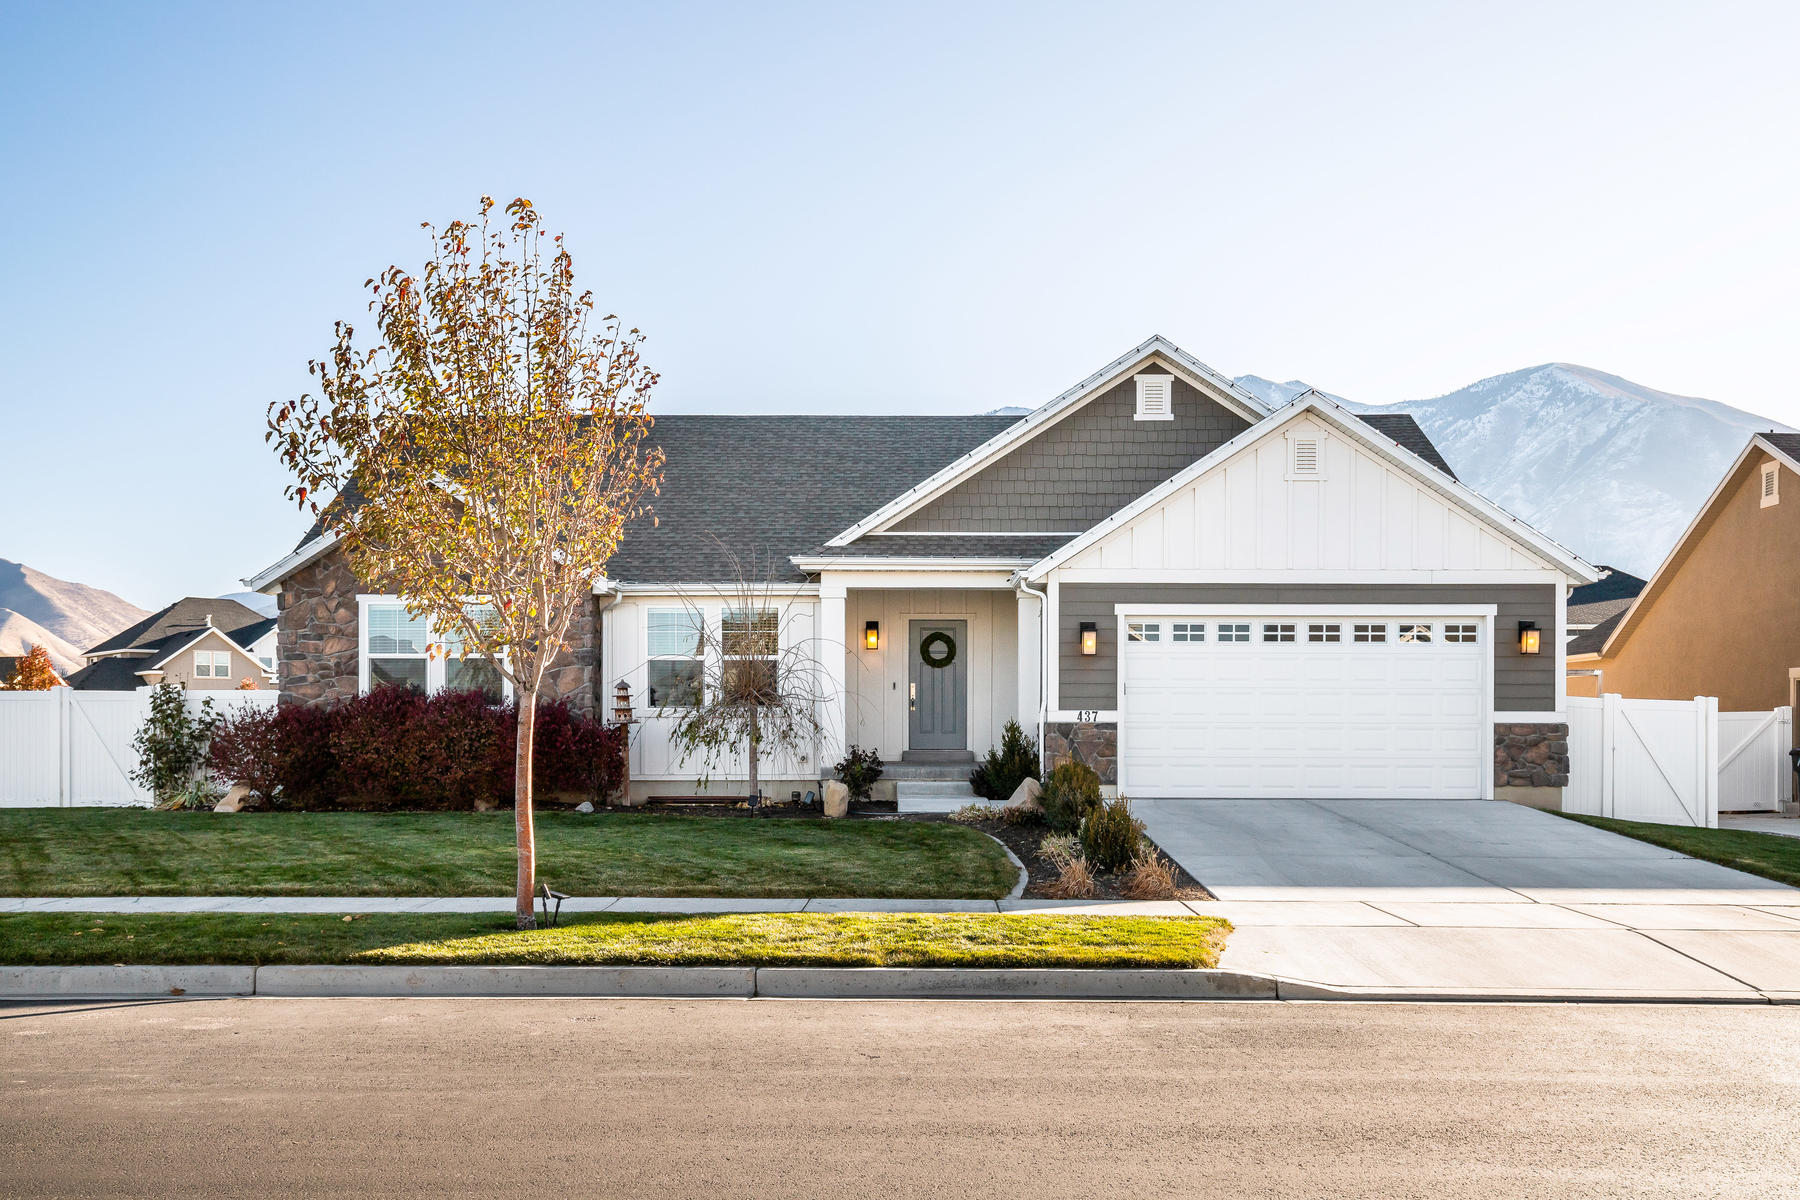 Single Family Homes for Sale at Amazing Location and Finishes 437 South 2430 East, Spanish Fork, Utah 84660 United States